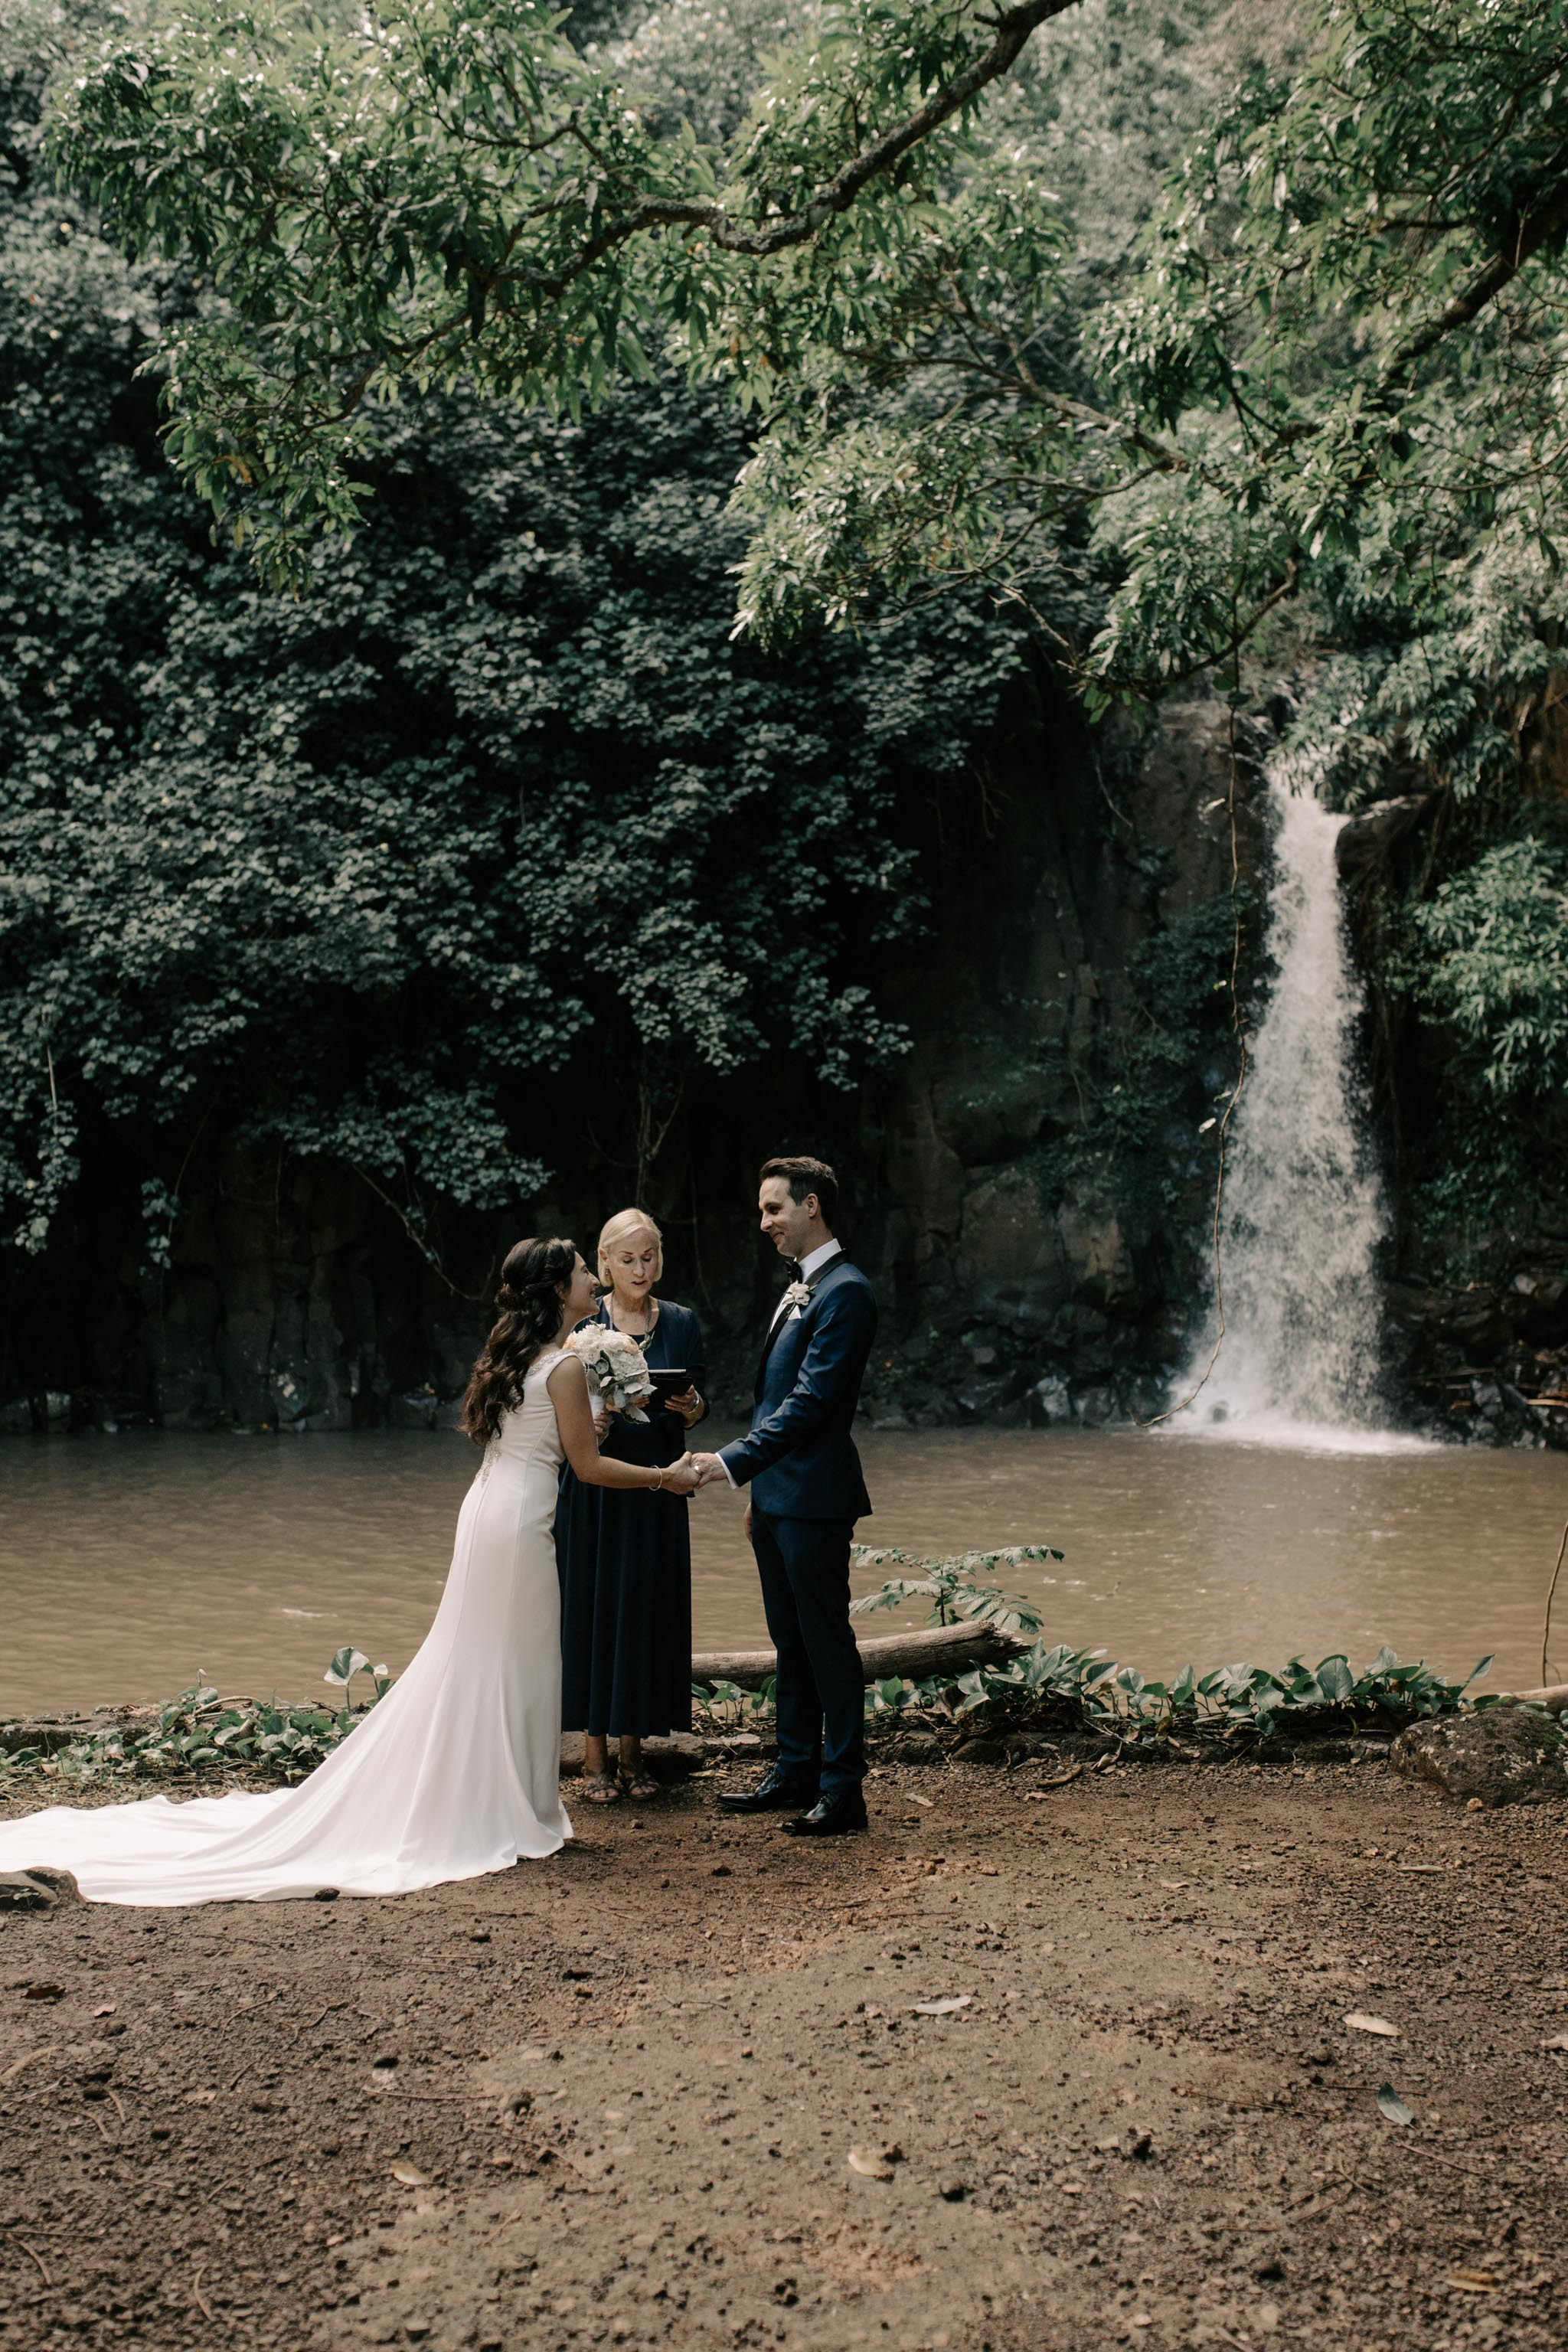 McBryde Garden Waihulili Waterfall Wedding By Kauai Wedding Photographer Desiree Leilani